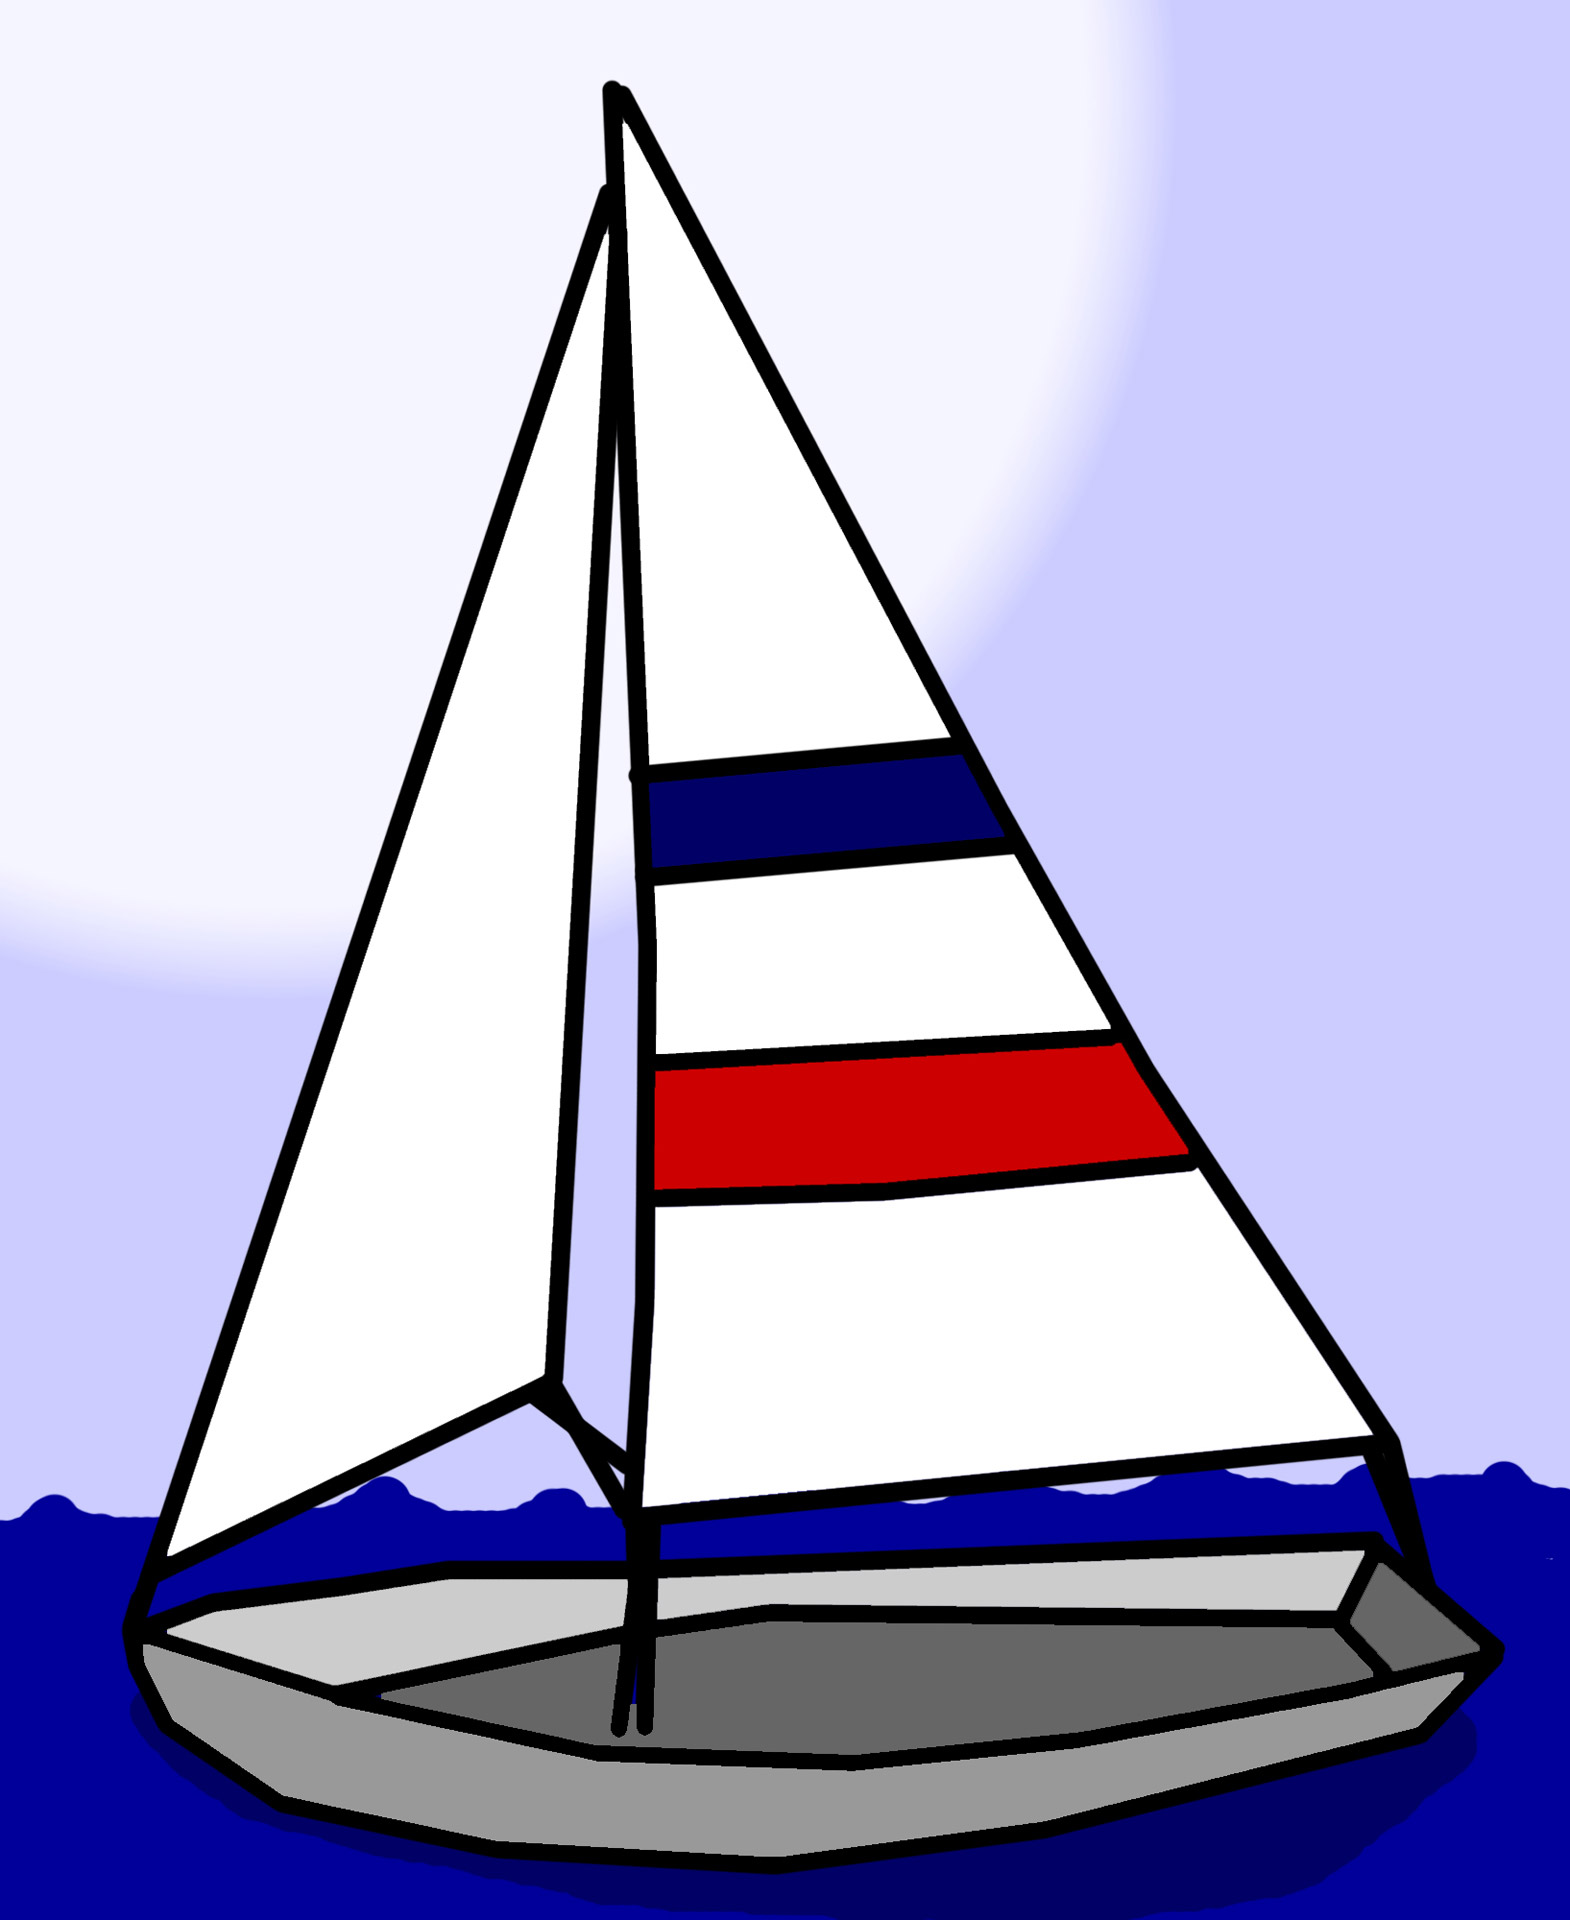 1570x1920 Sailboat Clipart Dinghy Pencil And In Color Sailboat